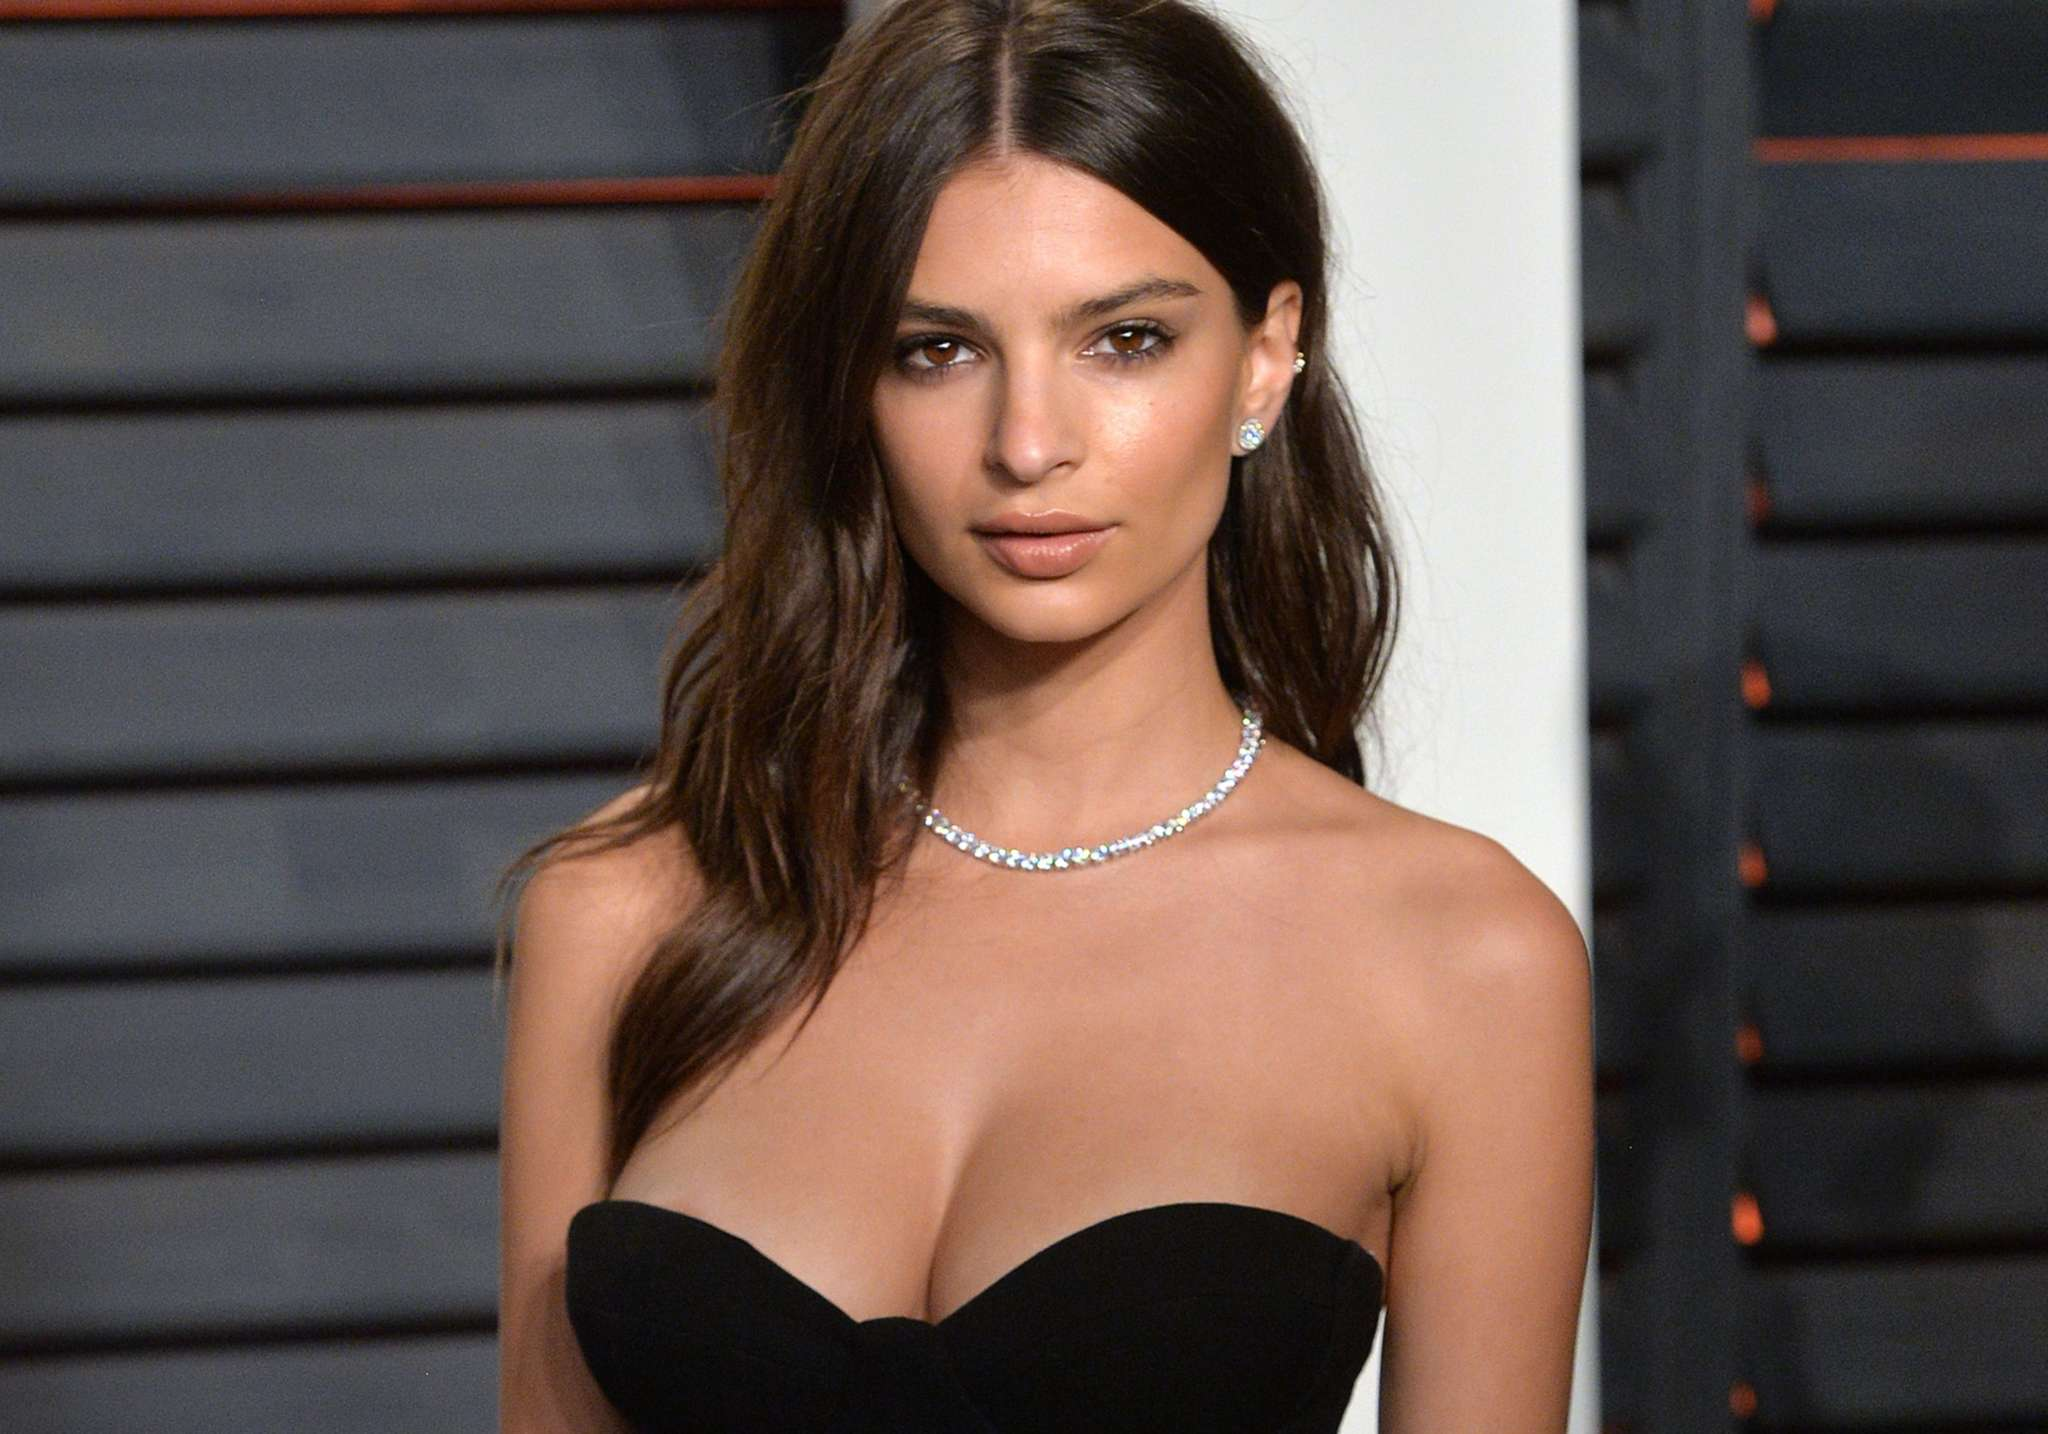 Emily Ratajkowski Stuns In a Tight Little Black Dress And Blonde Hair During Stroll Through New York City!